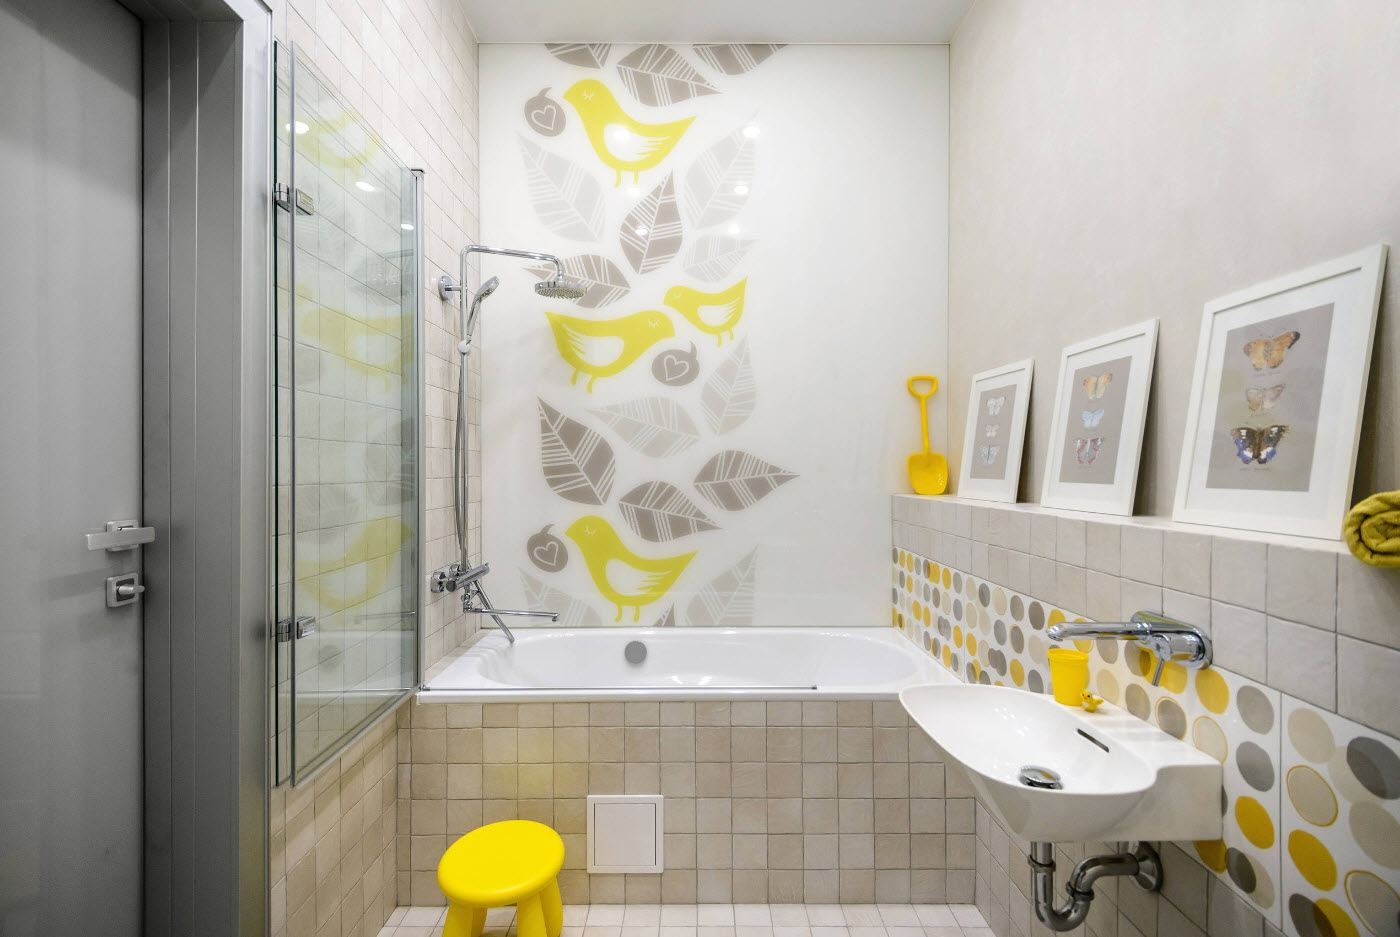 Bathroom Wall Finishing Materials Overview Small Design Ideas